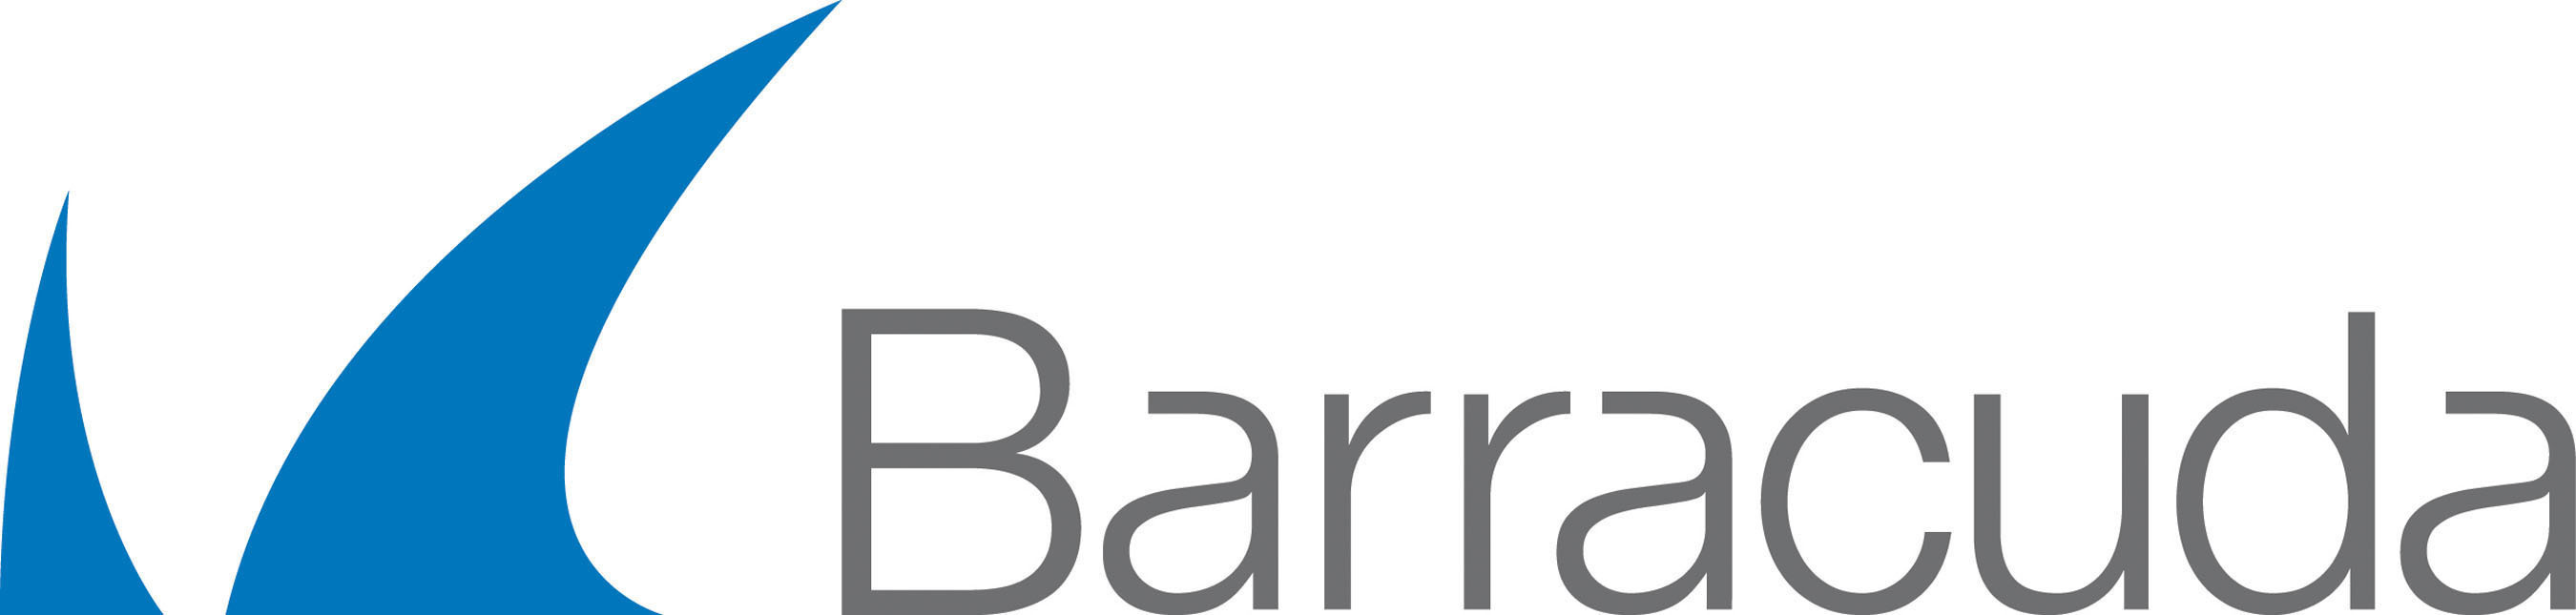 Barracuda Aims to Enhance the Customer Experience with Barracuda Solutions on AWS